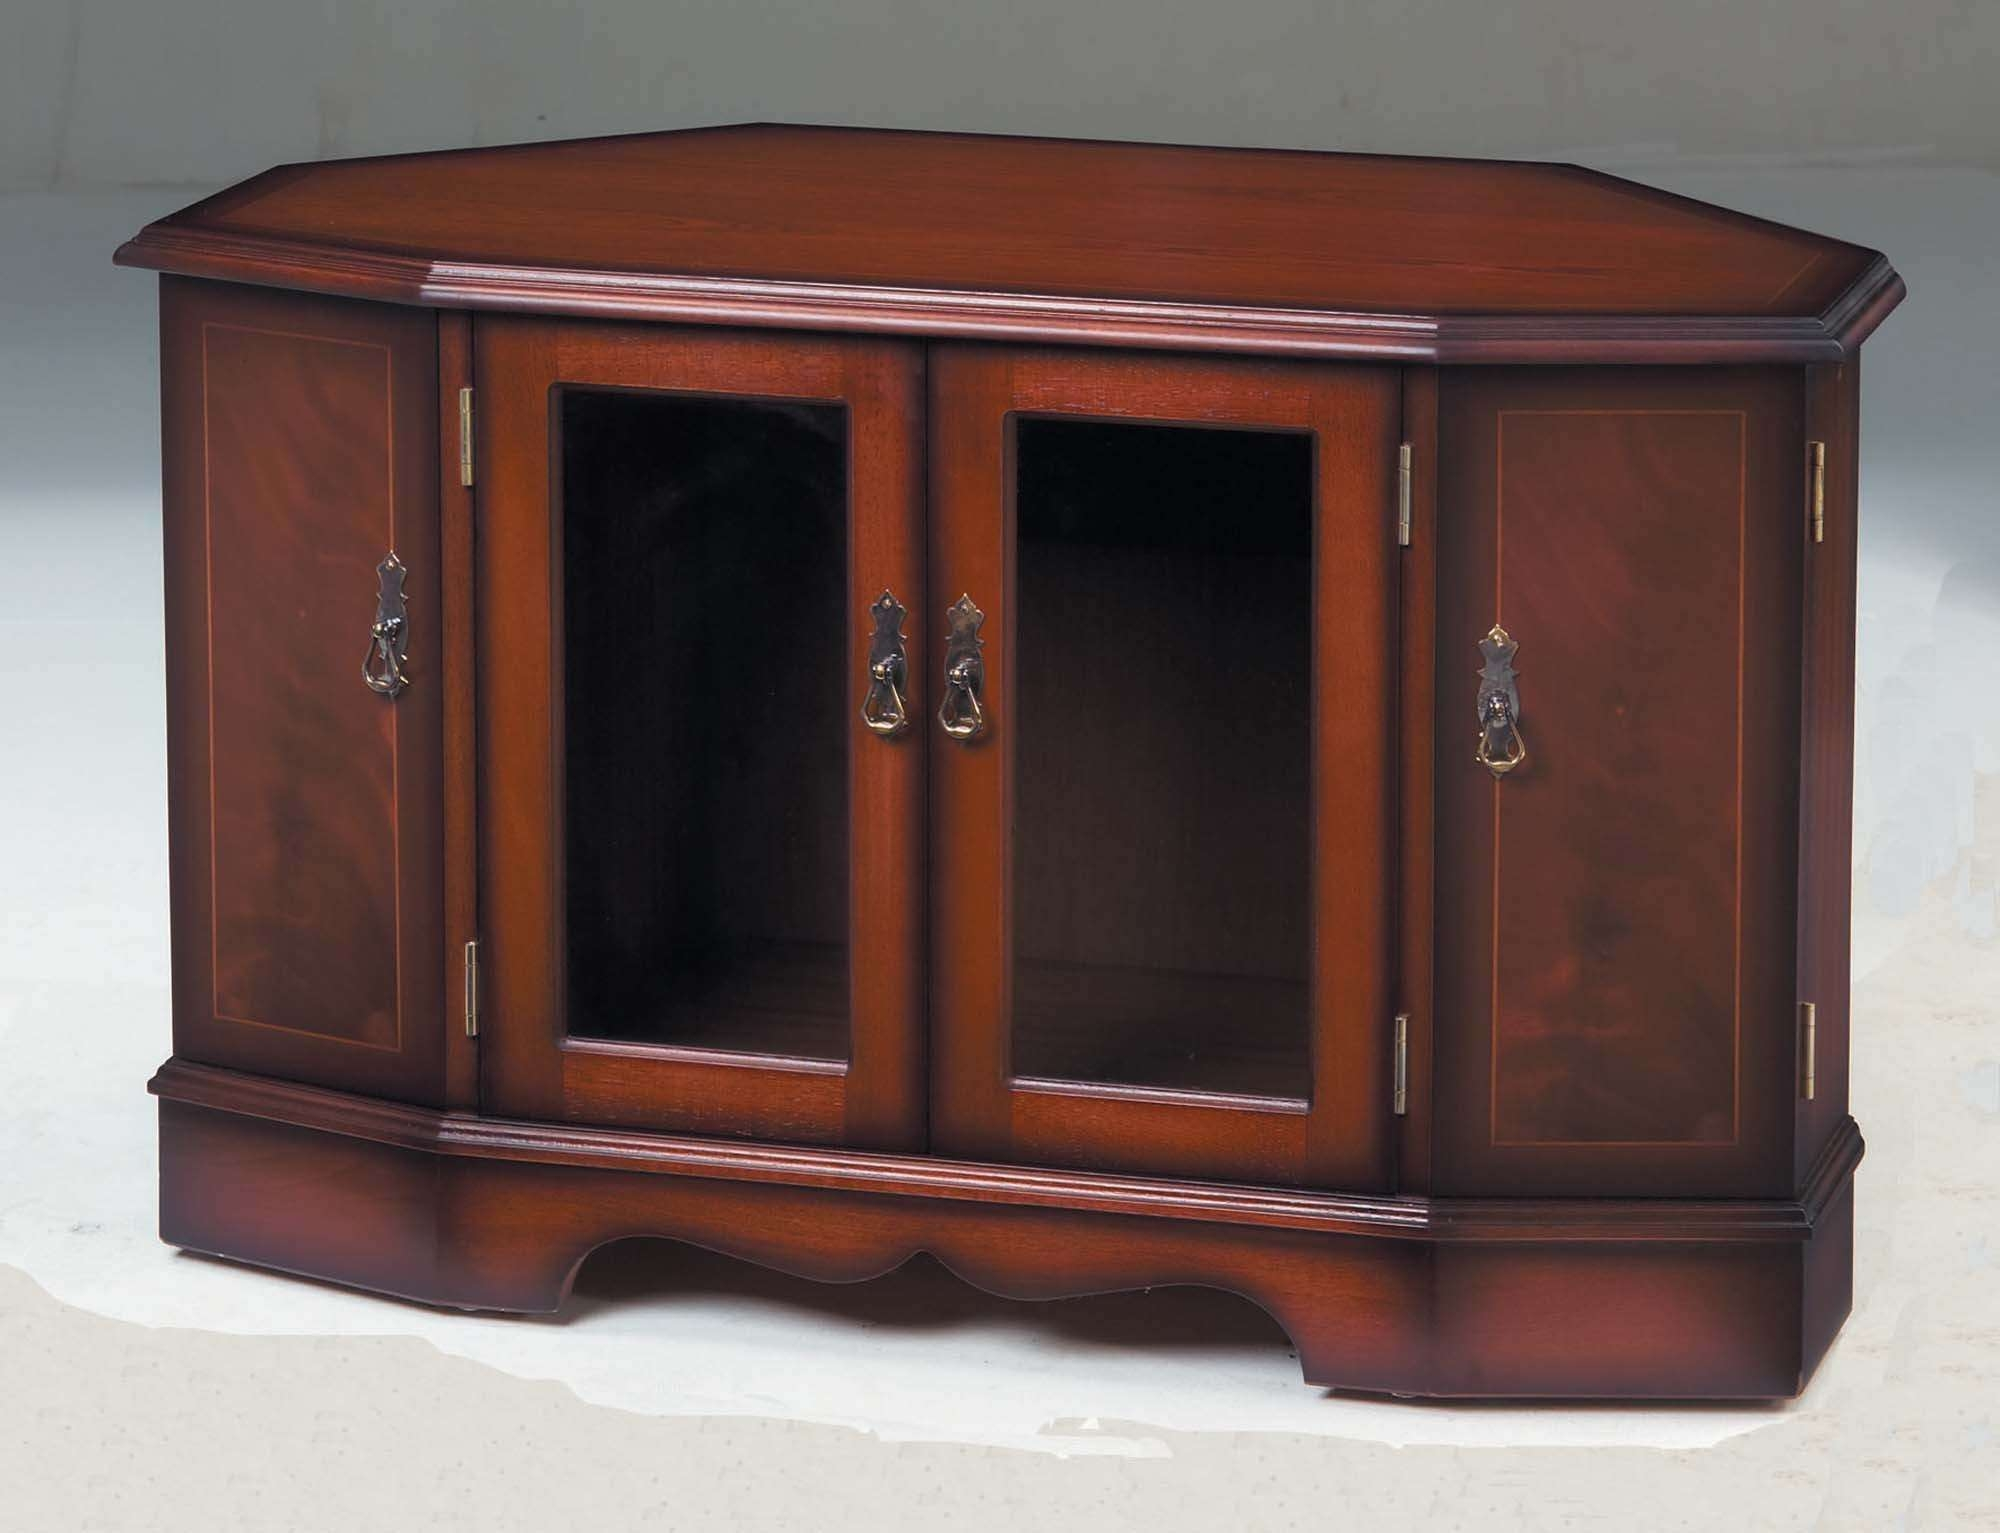 Strongbow Mahogany 1037 Corner Tv Cabinet | Tr Hayes – Furniture For Mahogany Tv Stands (View 15 of 15)